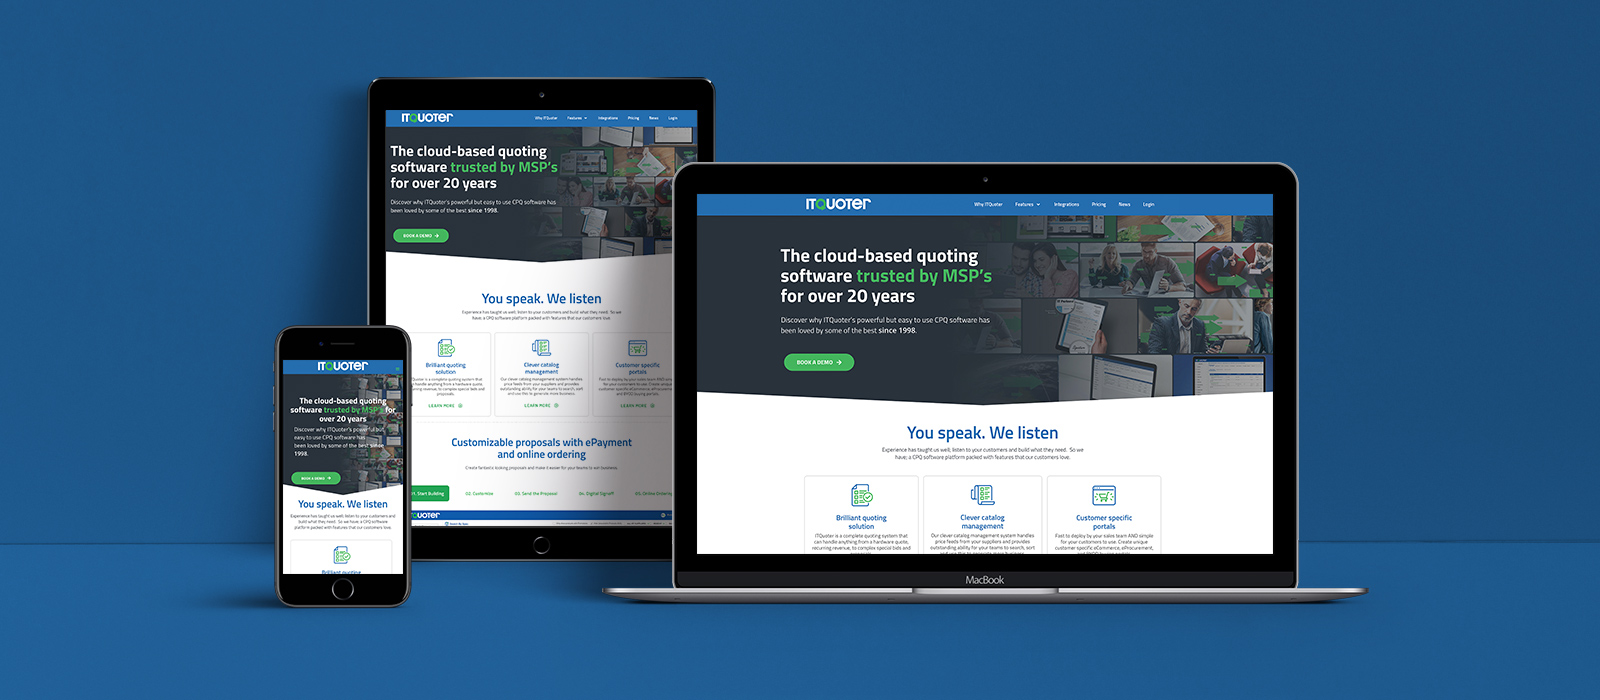 ITQuoter launches new website!